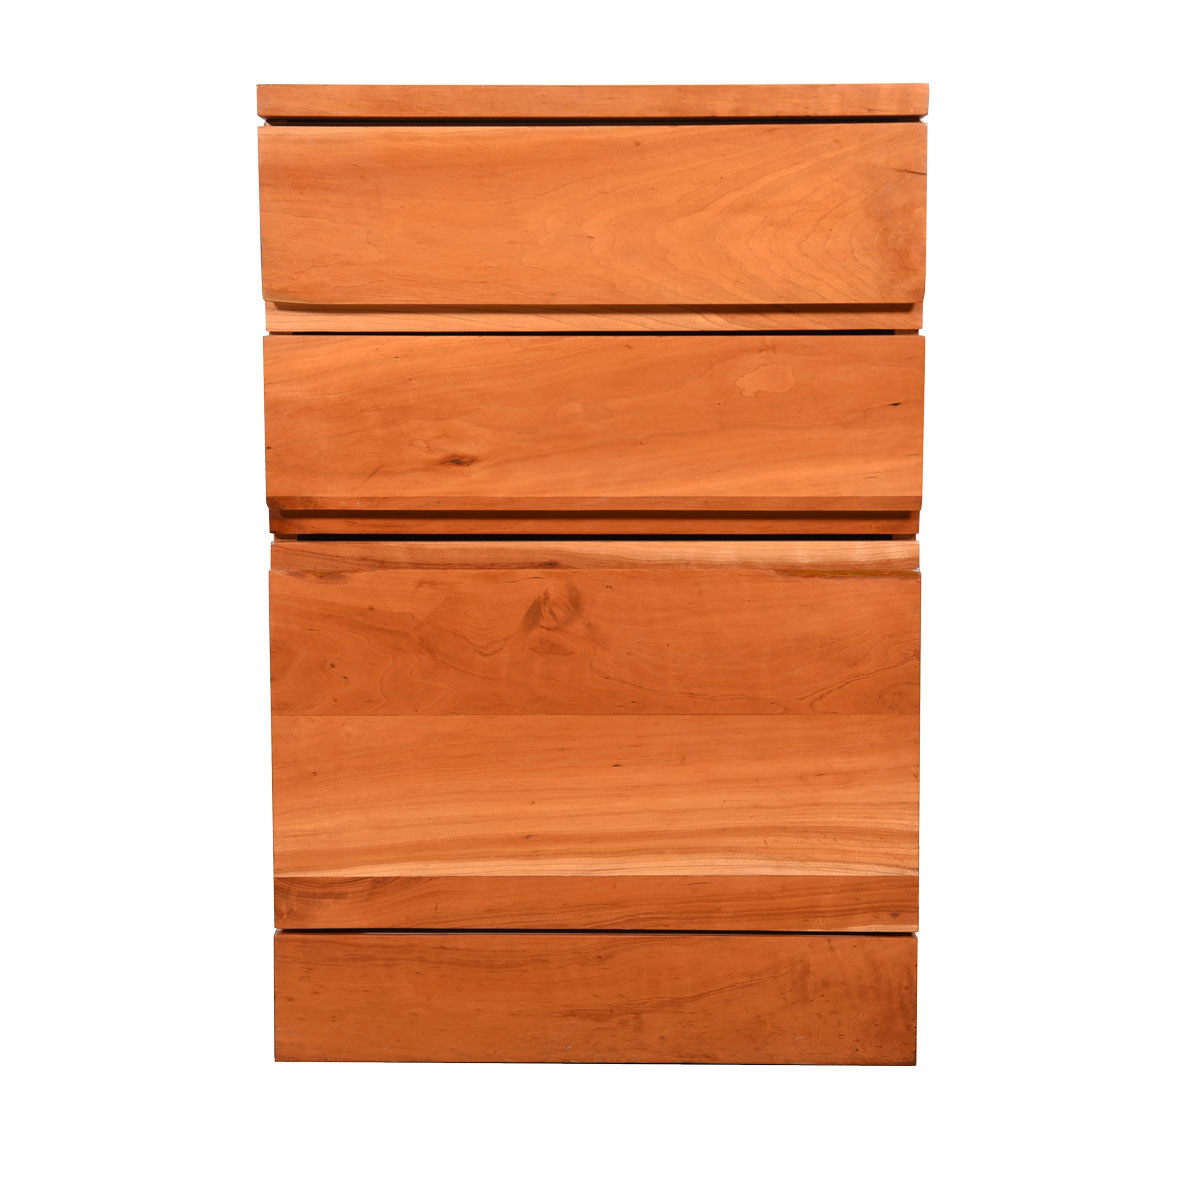 Solid-Cherry American Modernist Three-Drawer File Cabinet | Nightstand | Chest of Drawers